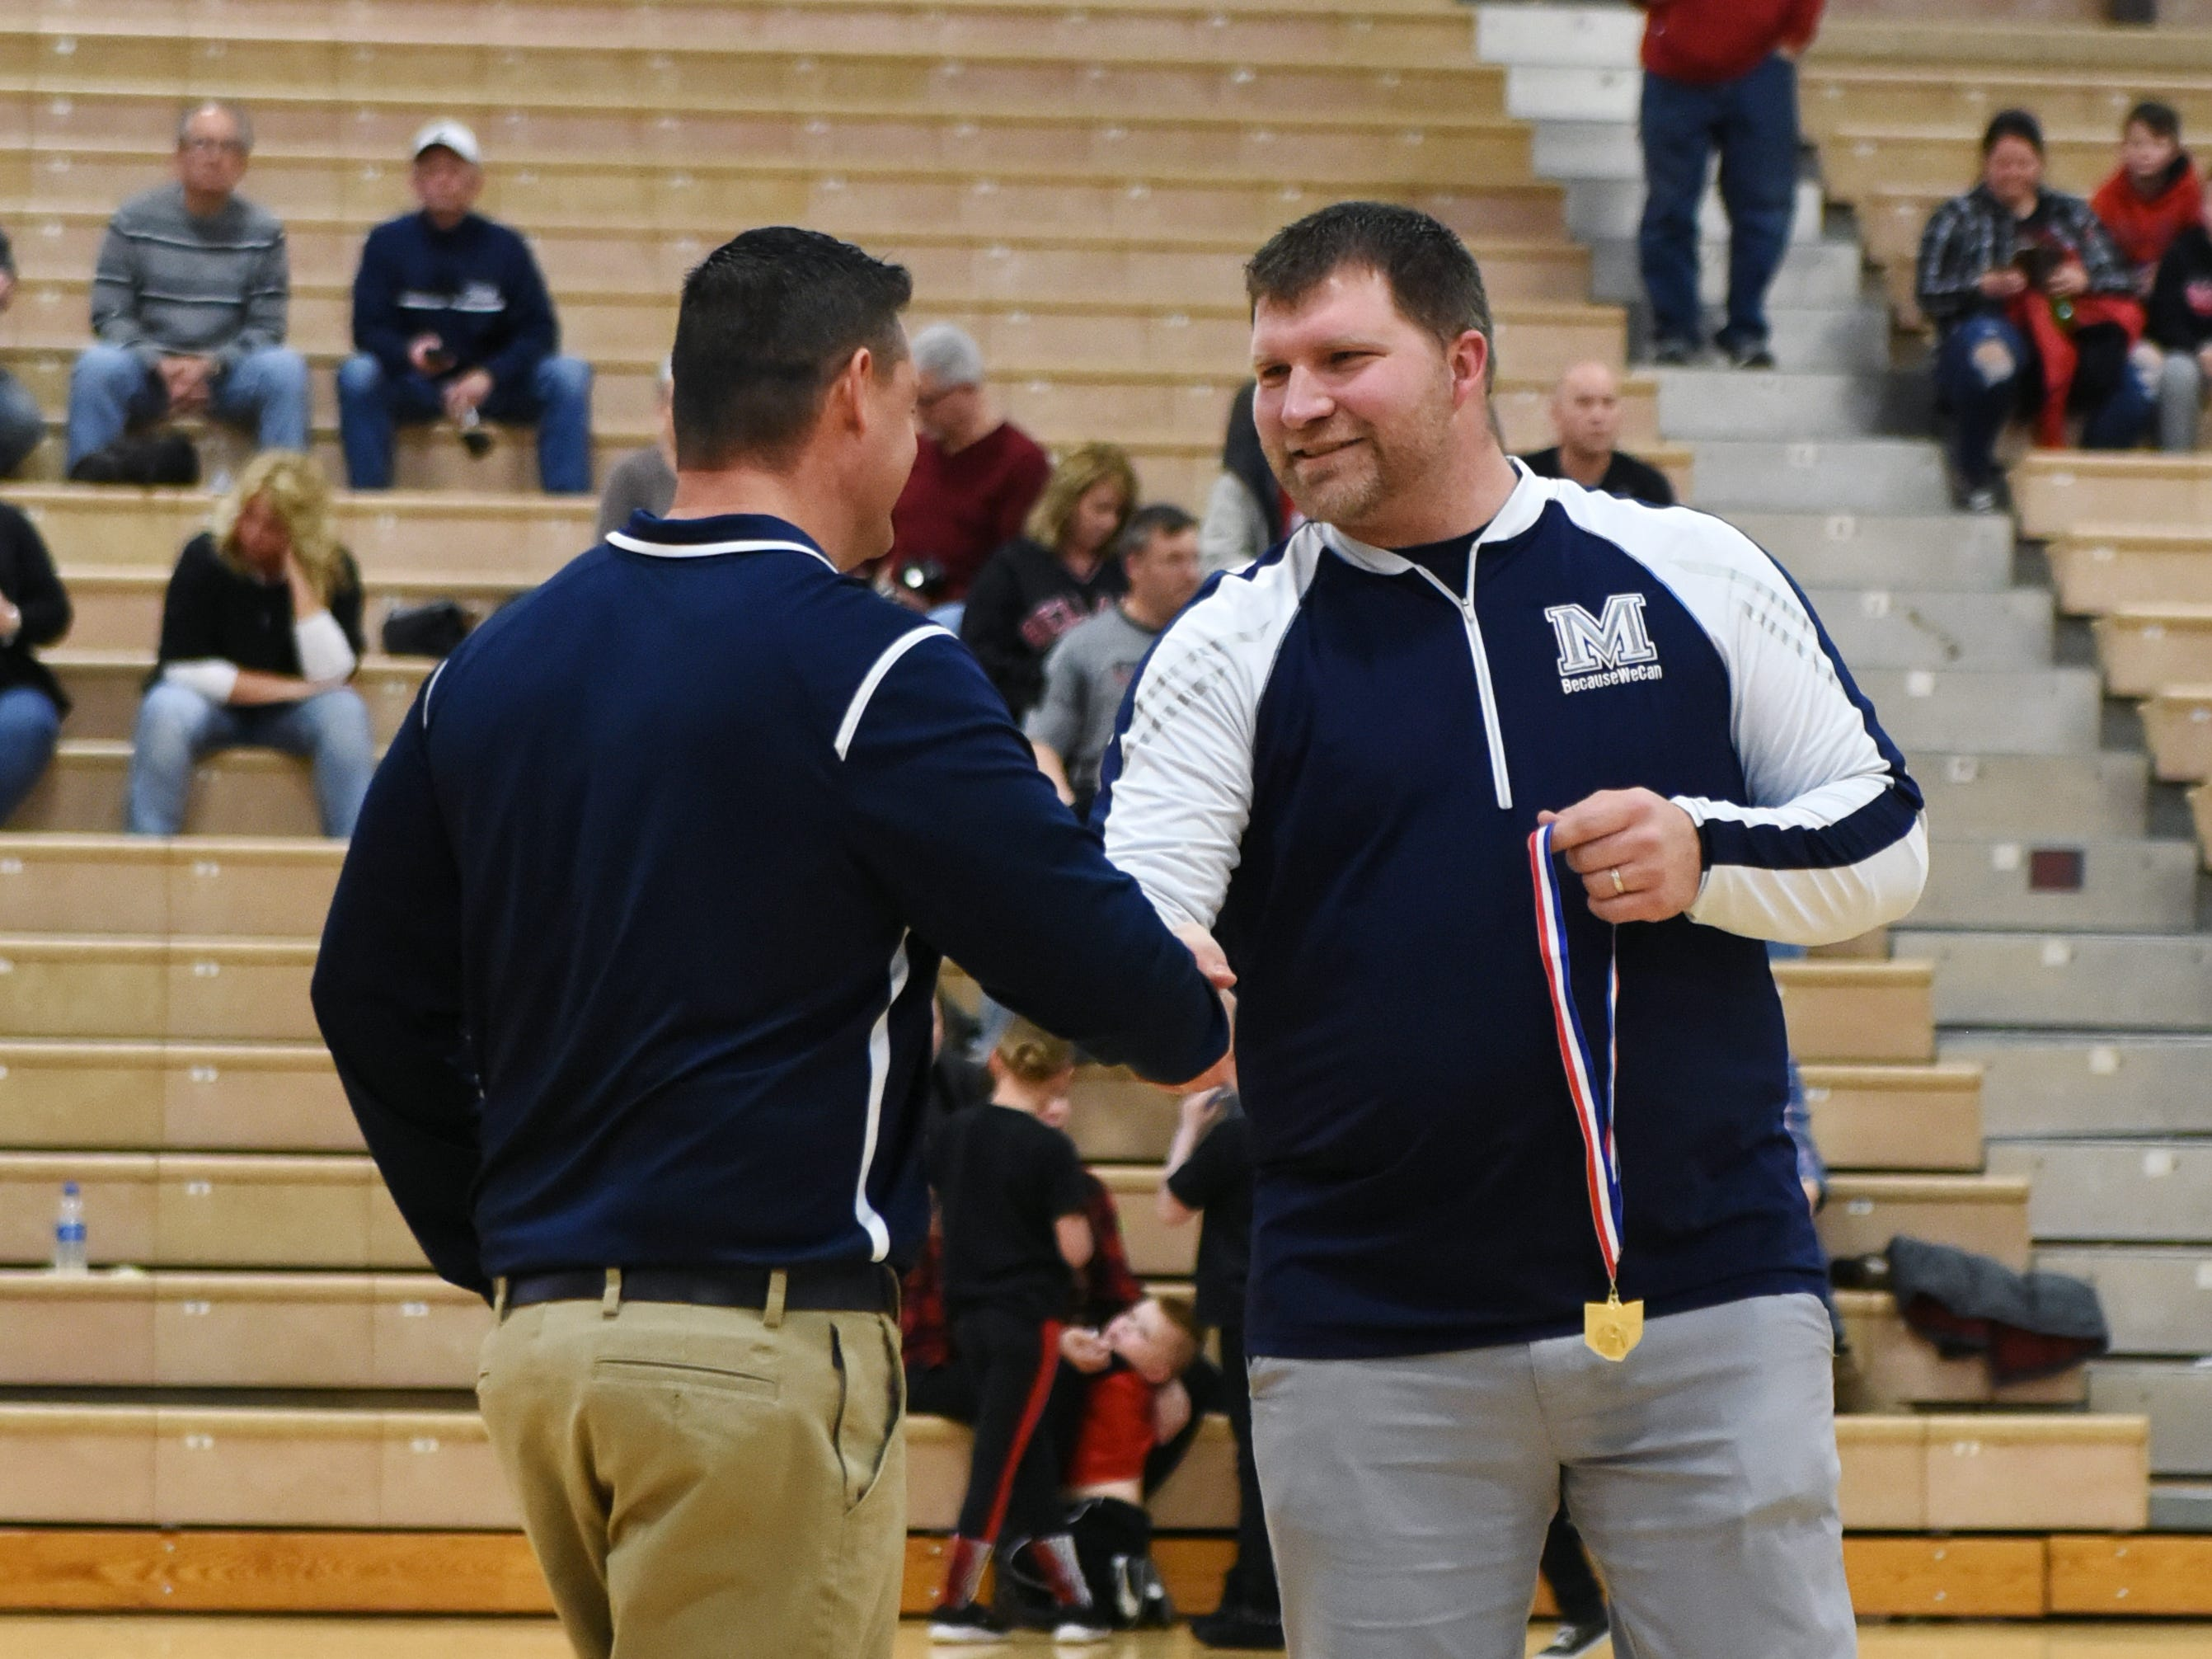 Morgan coach Matt Zumbro gets a handshake from his former player, Raiders atheltic director Adam Copeland, following Morgan's 46-44 district final win against Bellaire on Saturday. It was the Raiders' first district title in school history.